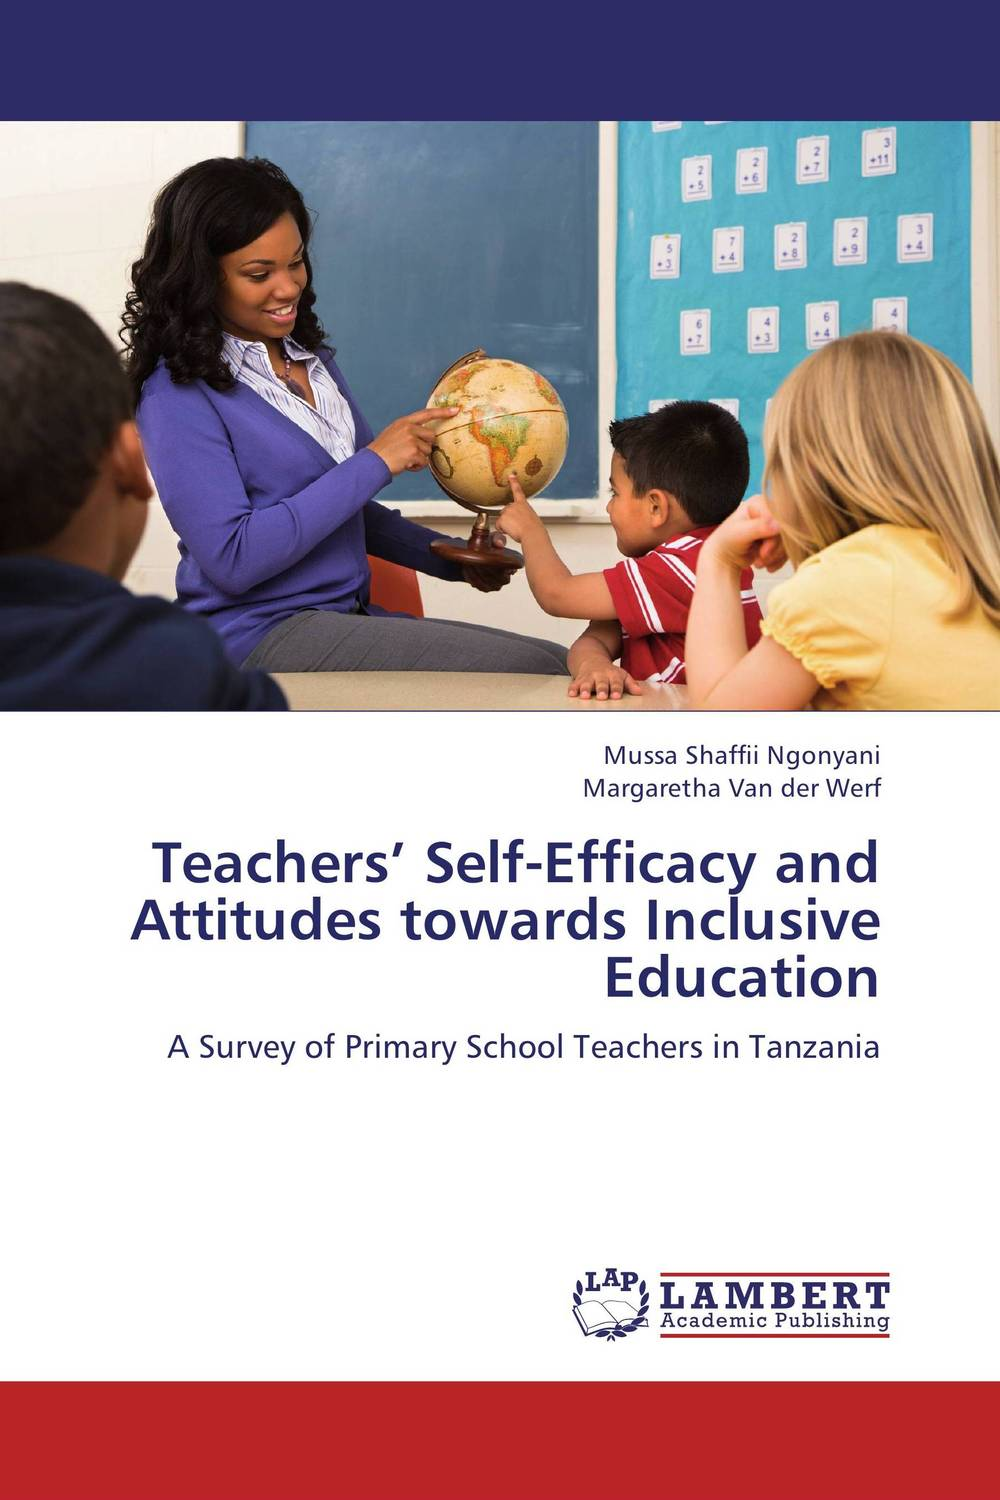 Teachers' Self-Efficacy and Attitudes towards Inclusive Education entrepreneurship education self efficacy and intentions